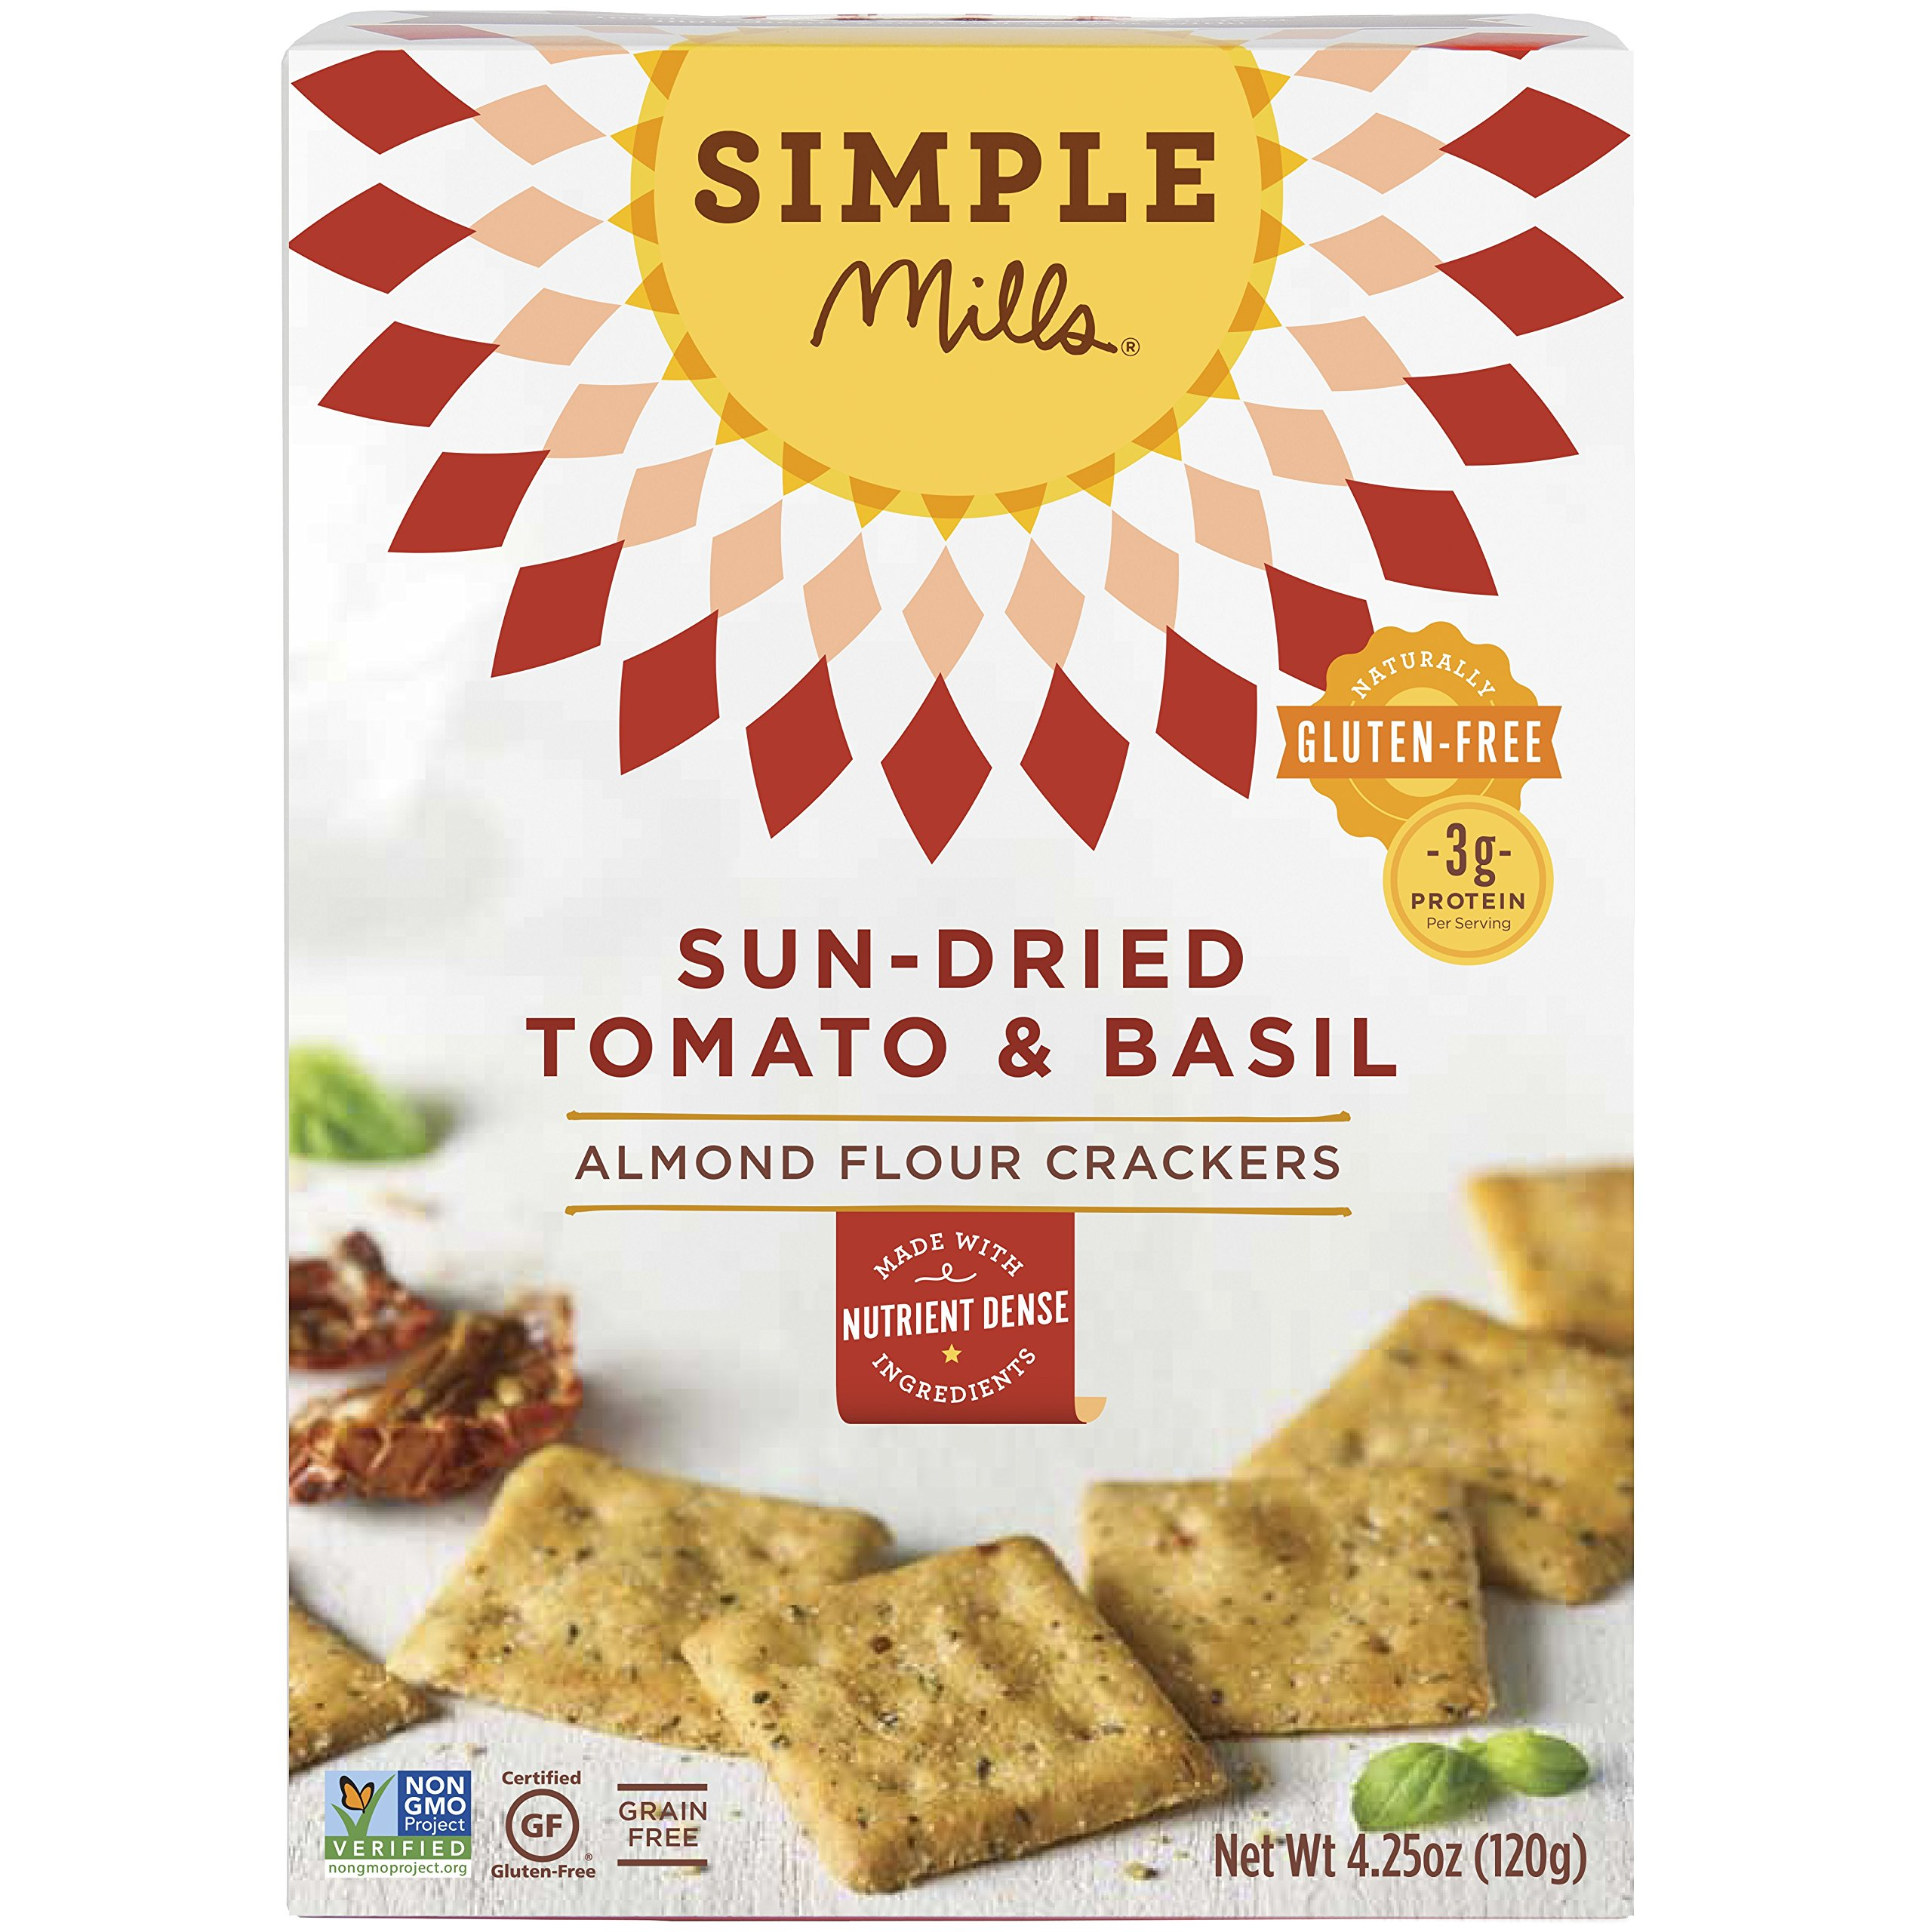 Simple Mills Almond Flour Crackers, Sundried Tomato & Basil, 4.25 oz by Simple Mills